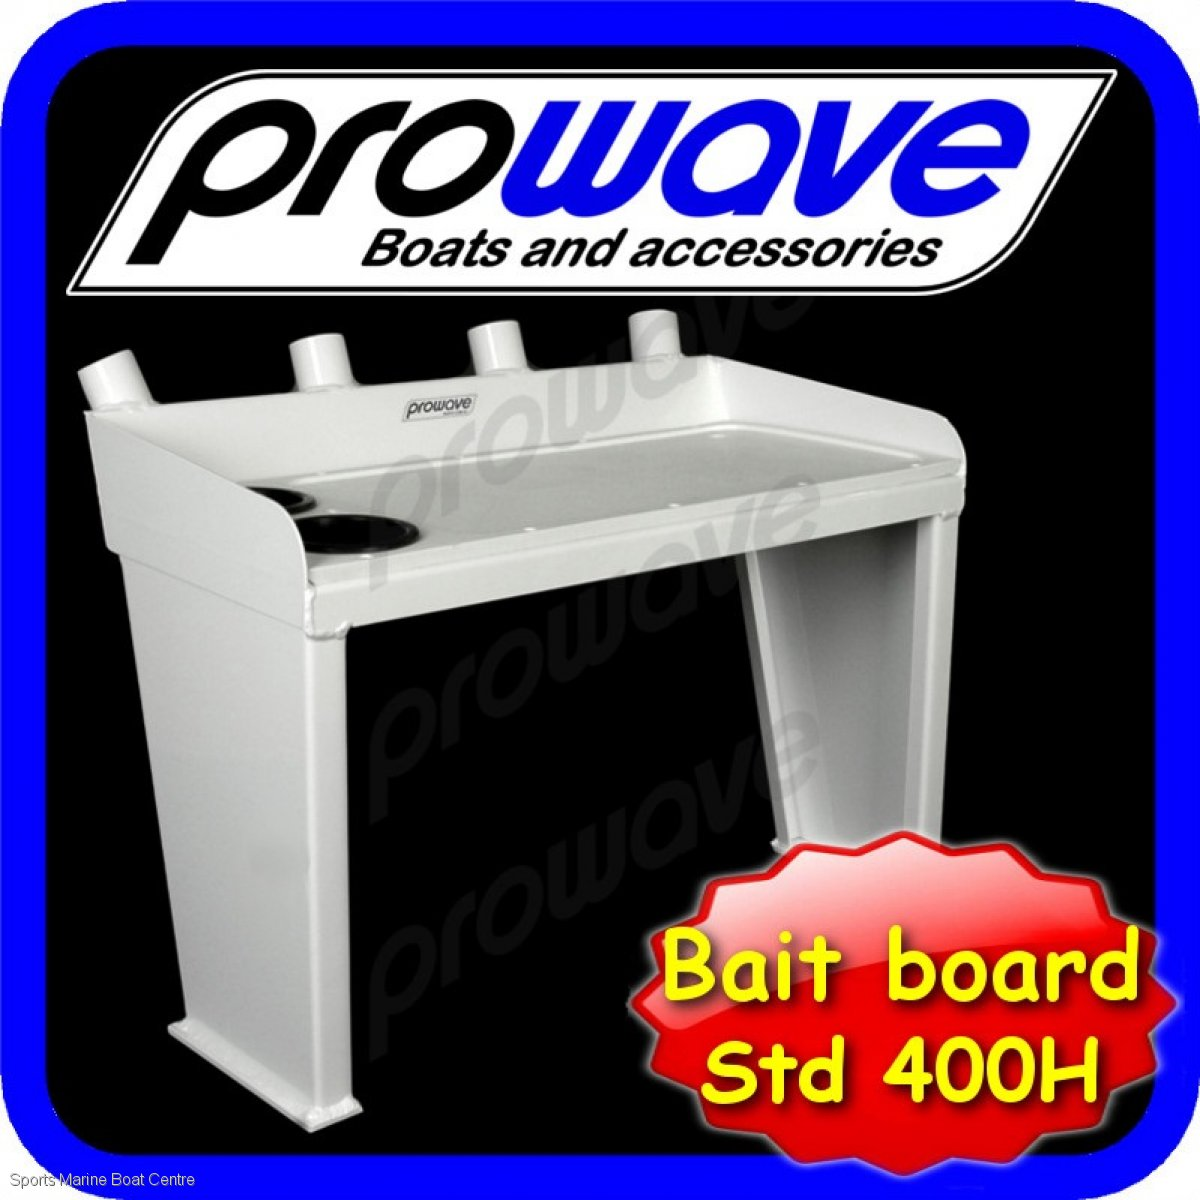 Proline bait board with 4 rod holders and 2 drink holders